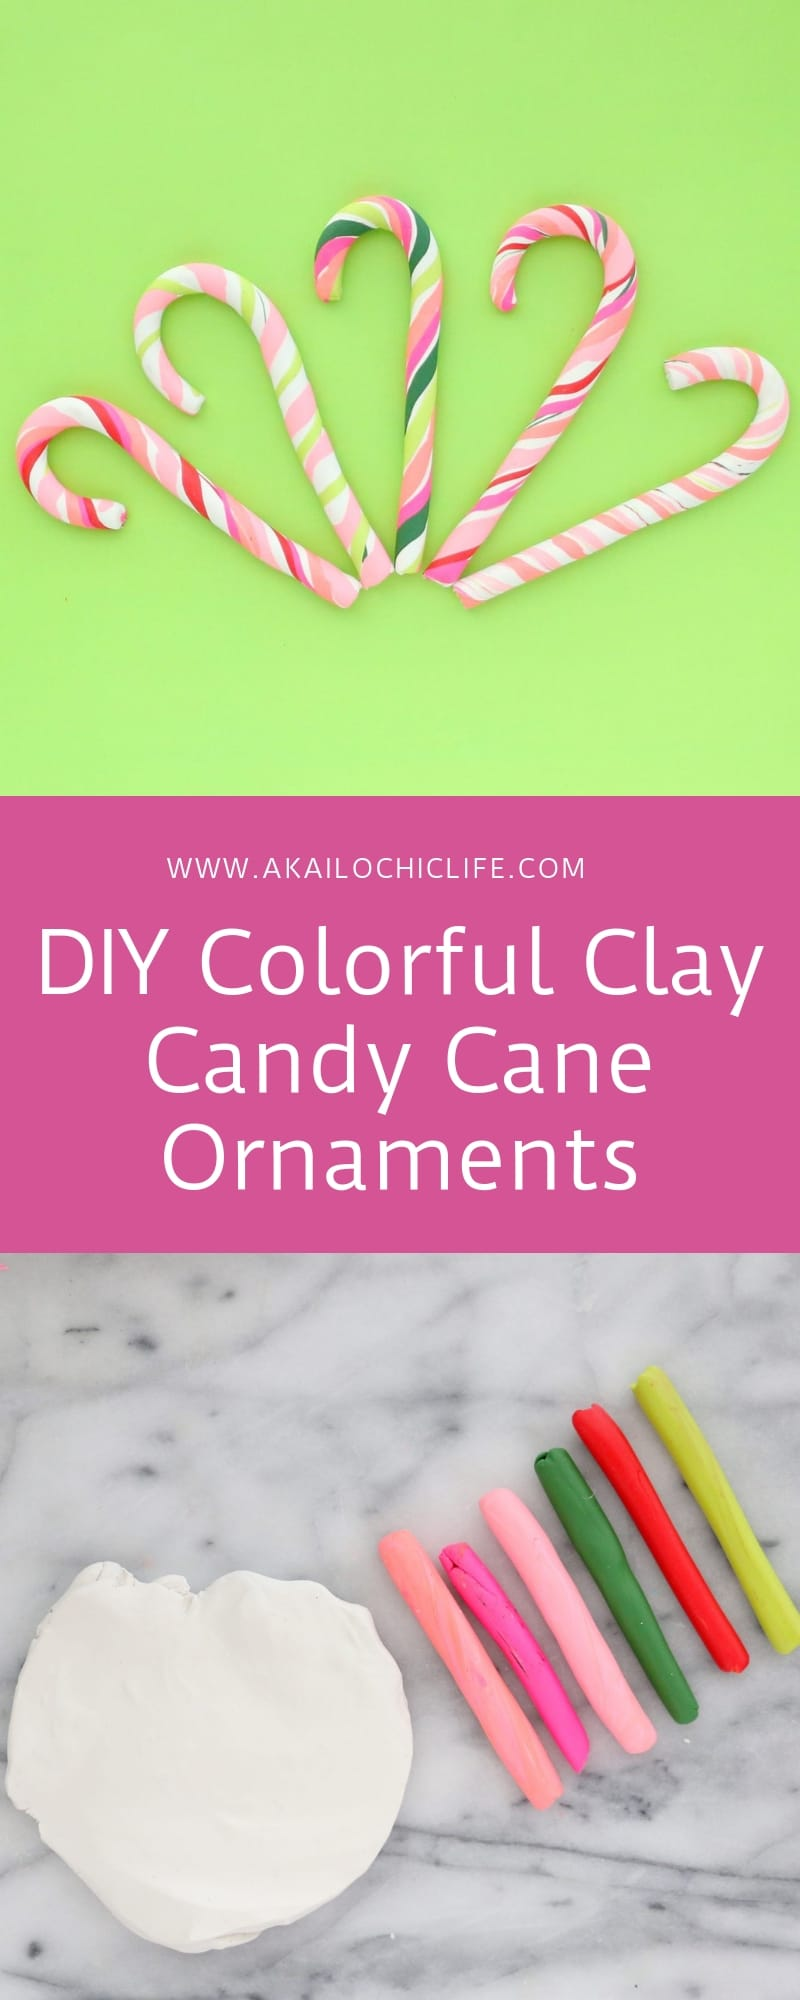 Colorful Candy Cane Ornaments